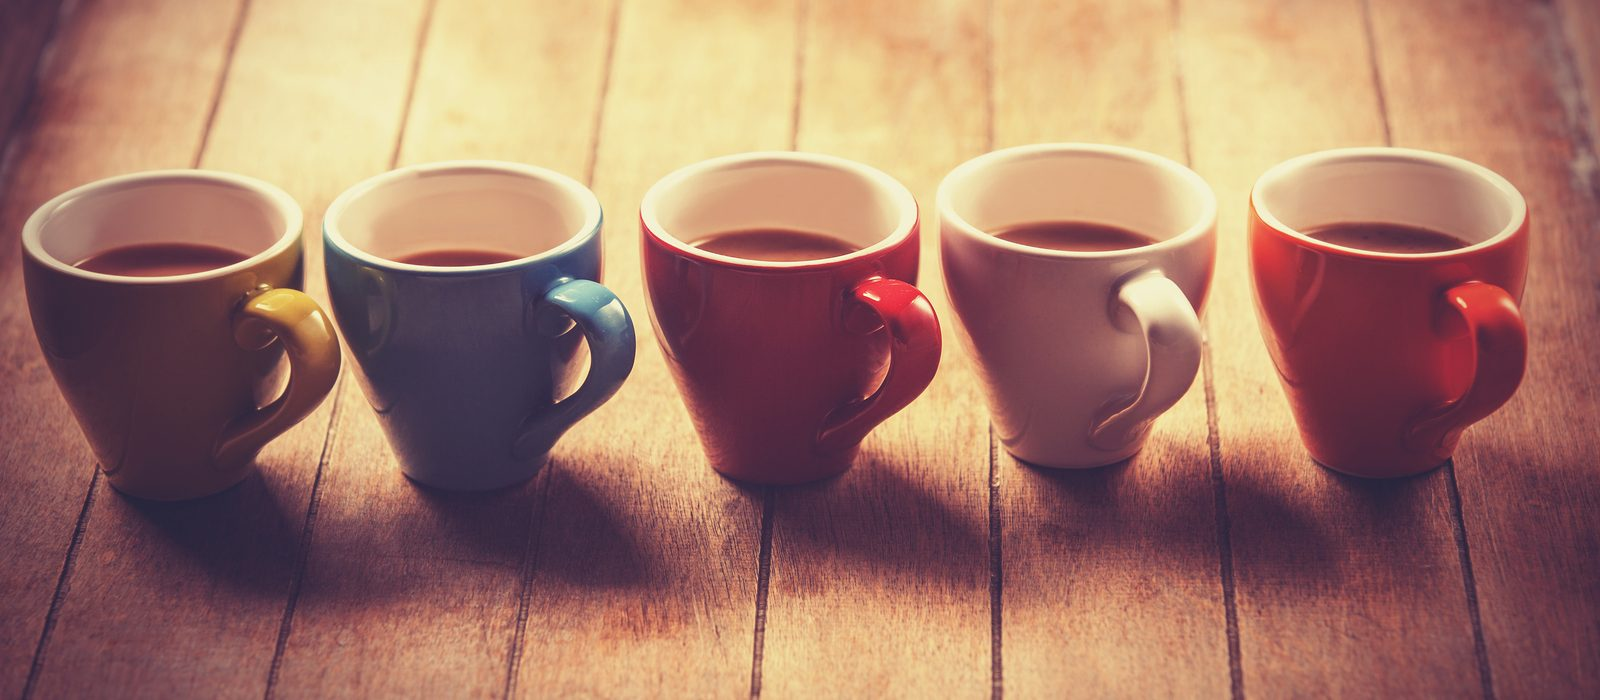 coffee_cups_wide